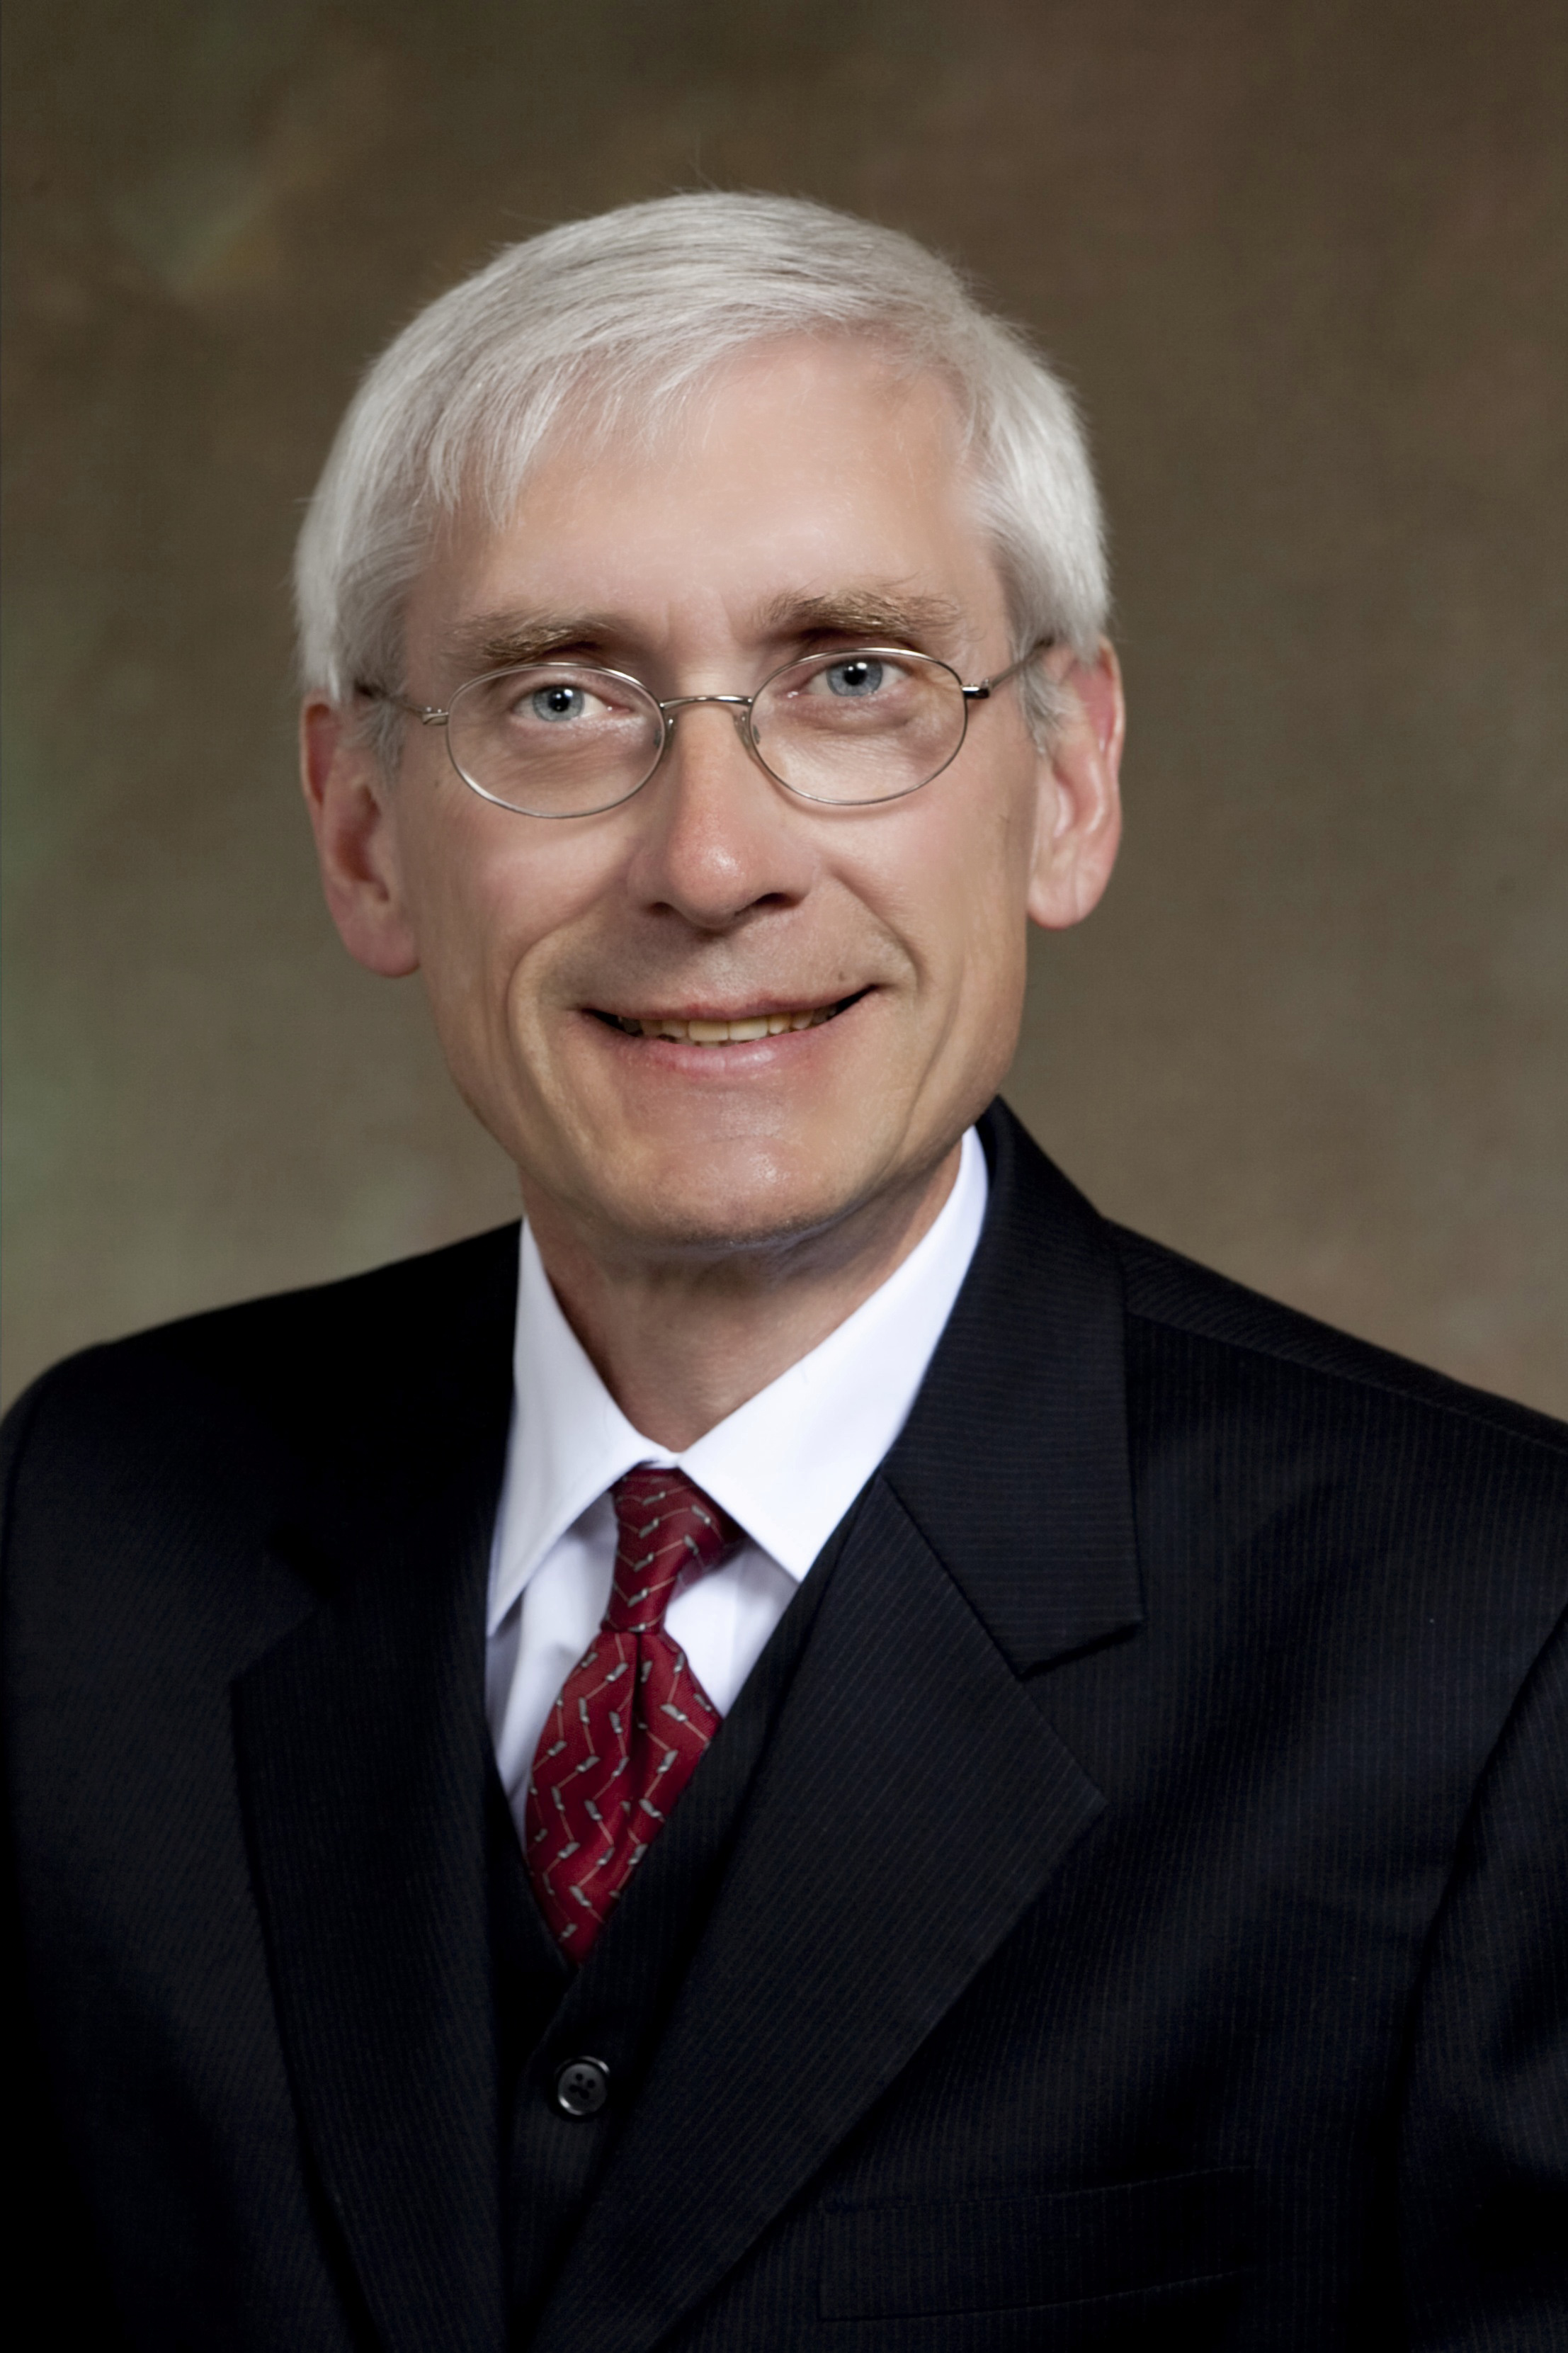 Governor-elect Evers Announces Key Cabinet Appointments